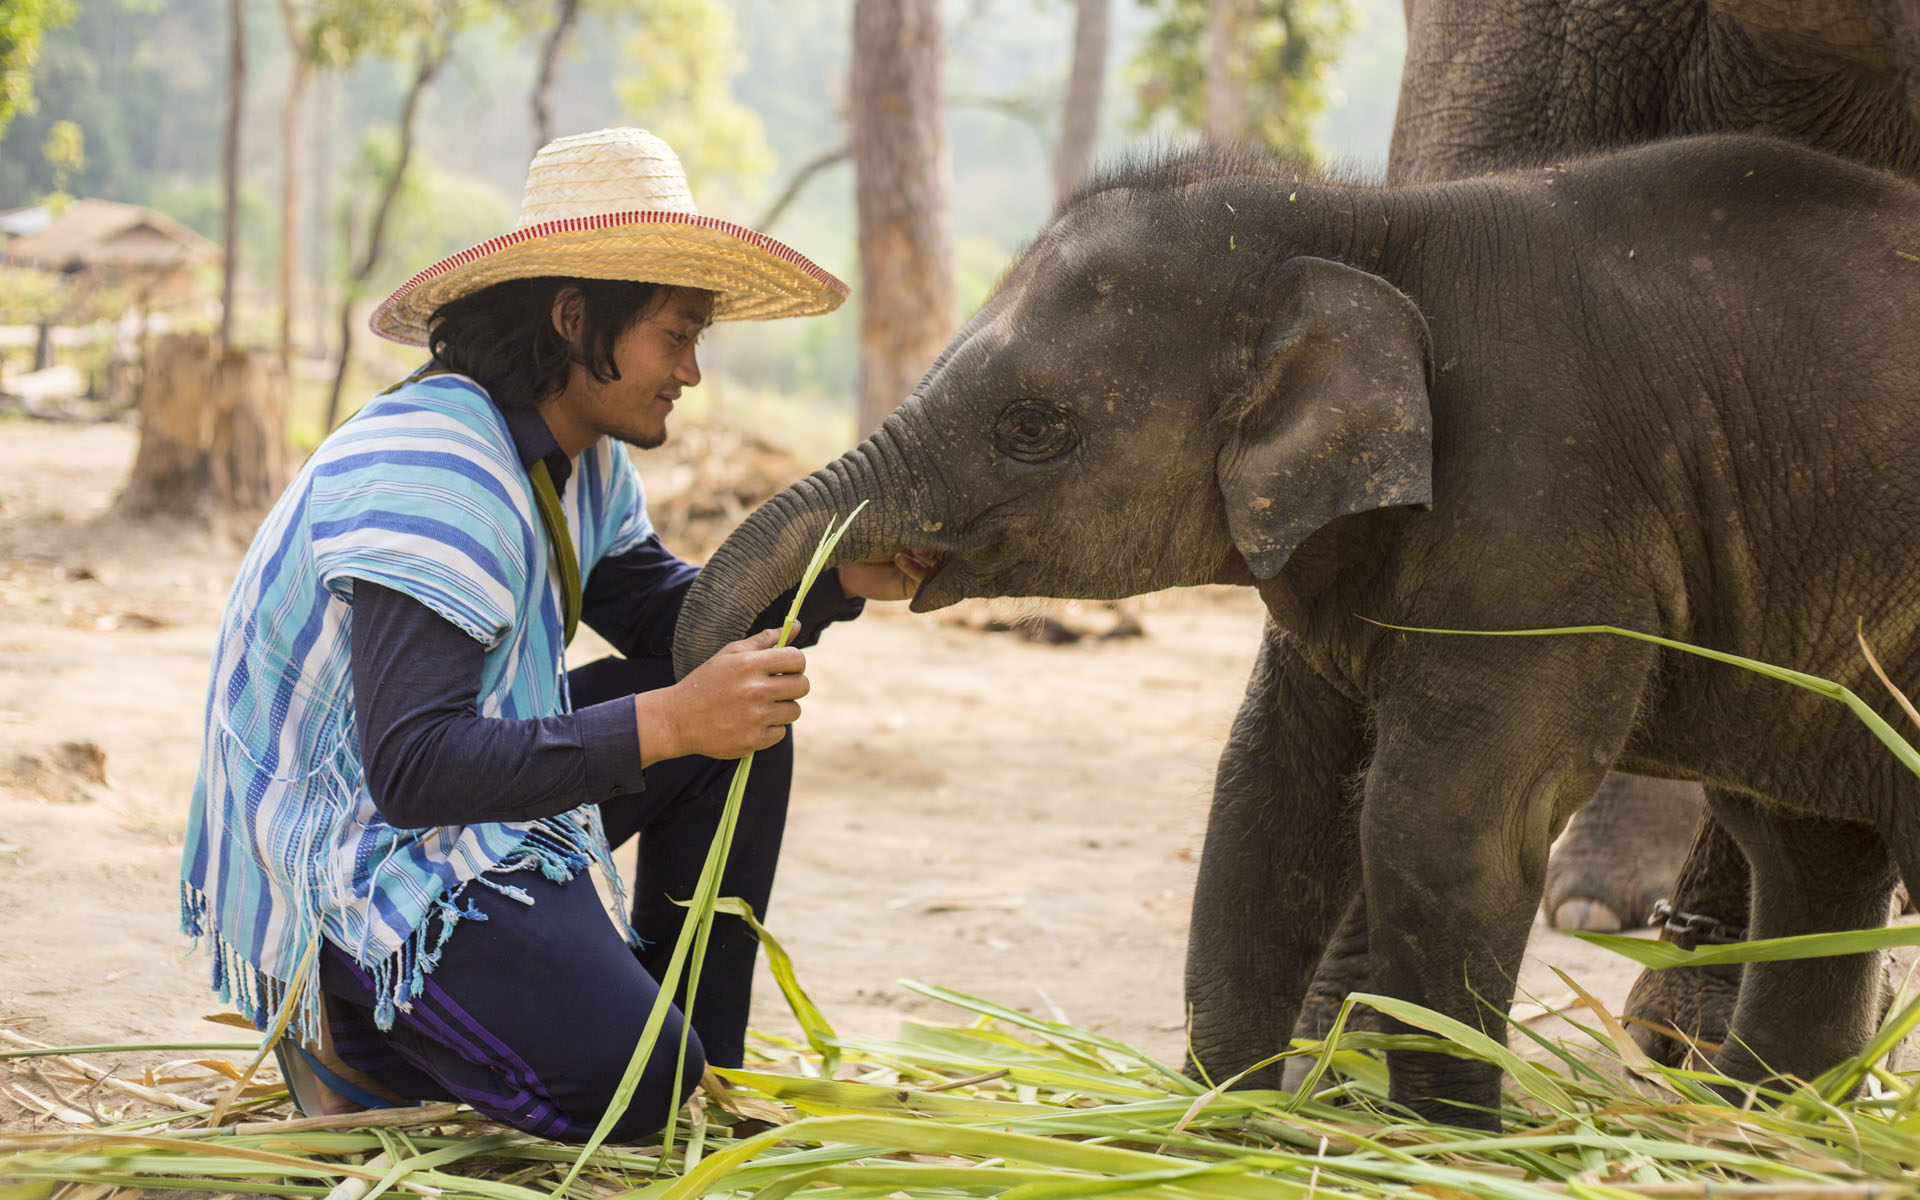 Somporn feeds an elephant in Thailand.